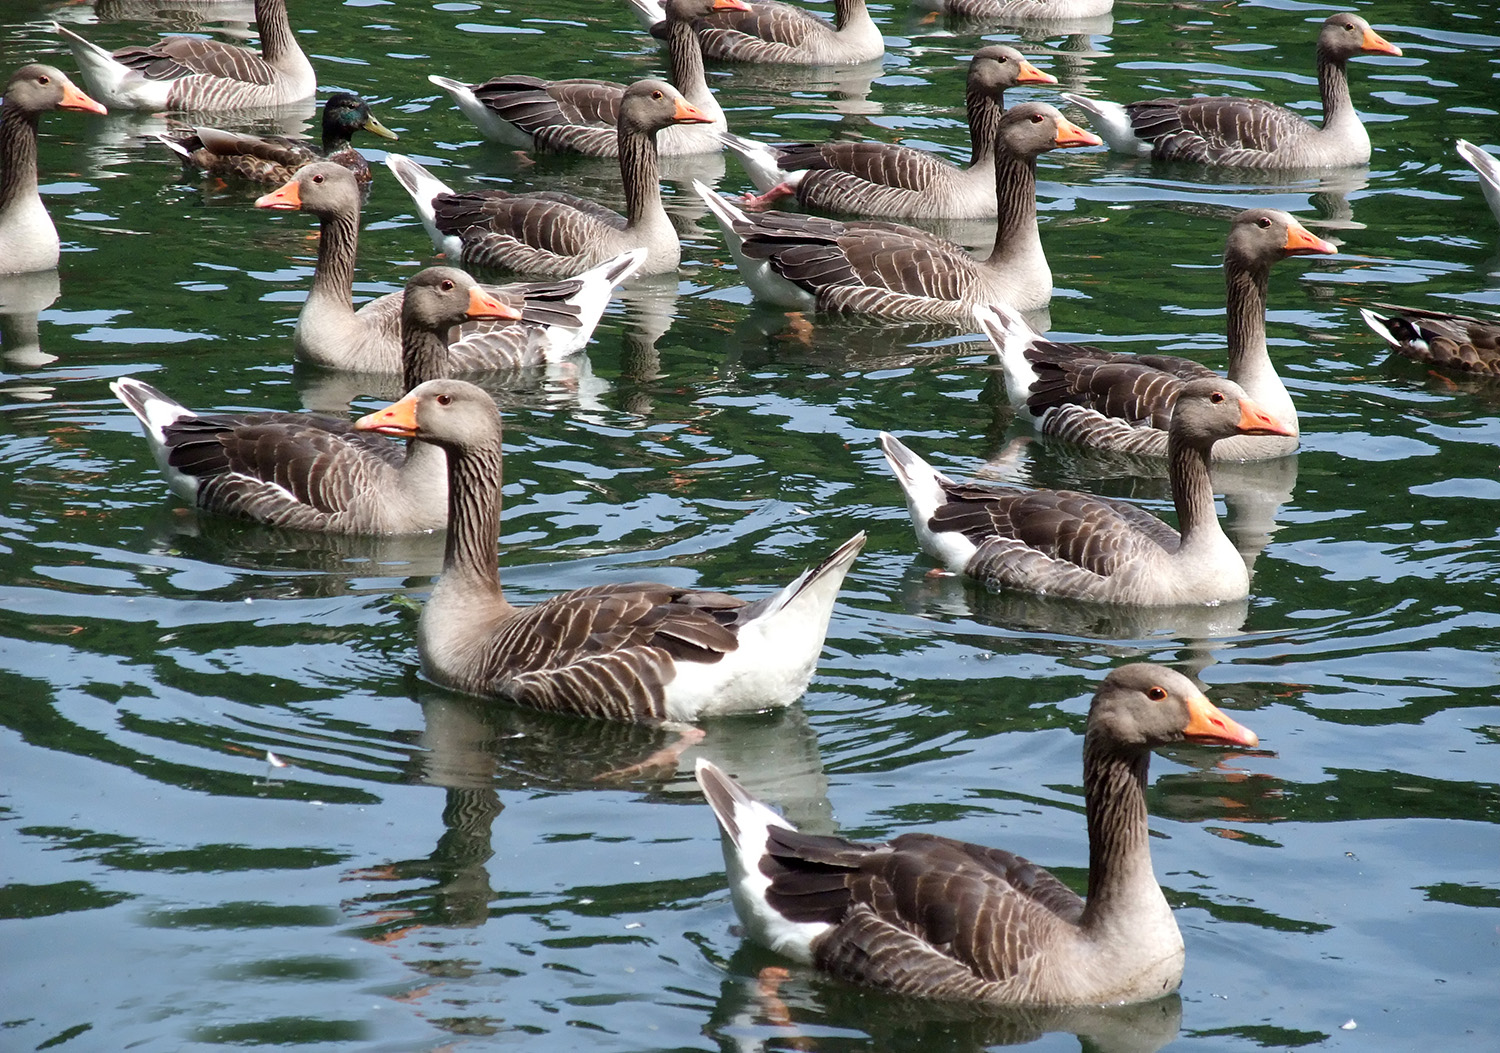 Greylag geese at the Mere (to order photos ring 353597)